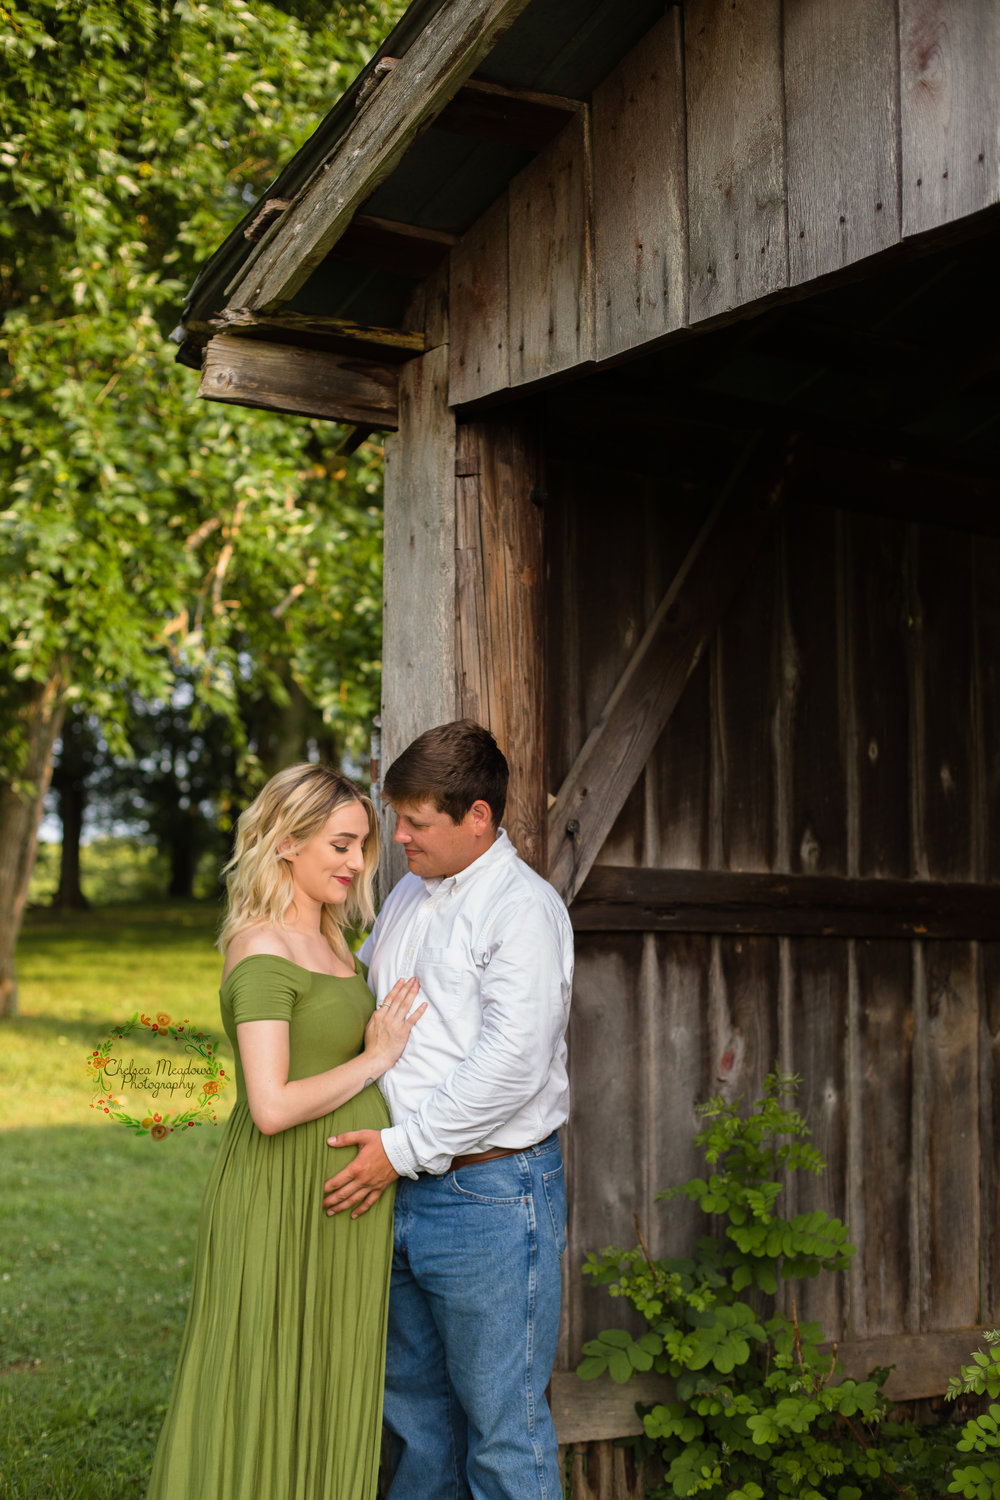 Maya Costanza Maternity - Nashville Maternity Photographer - Chelsea Meadows Photography (106).jpg